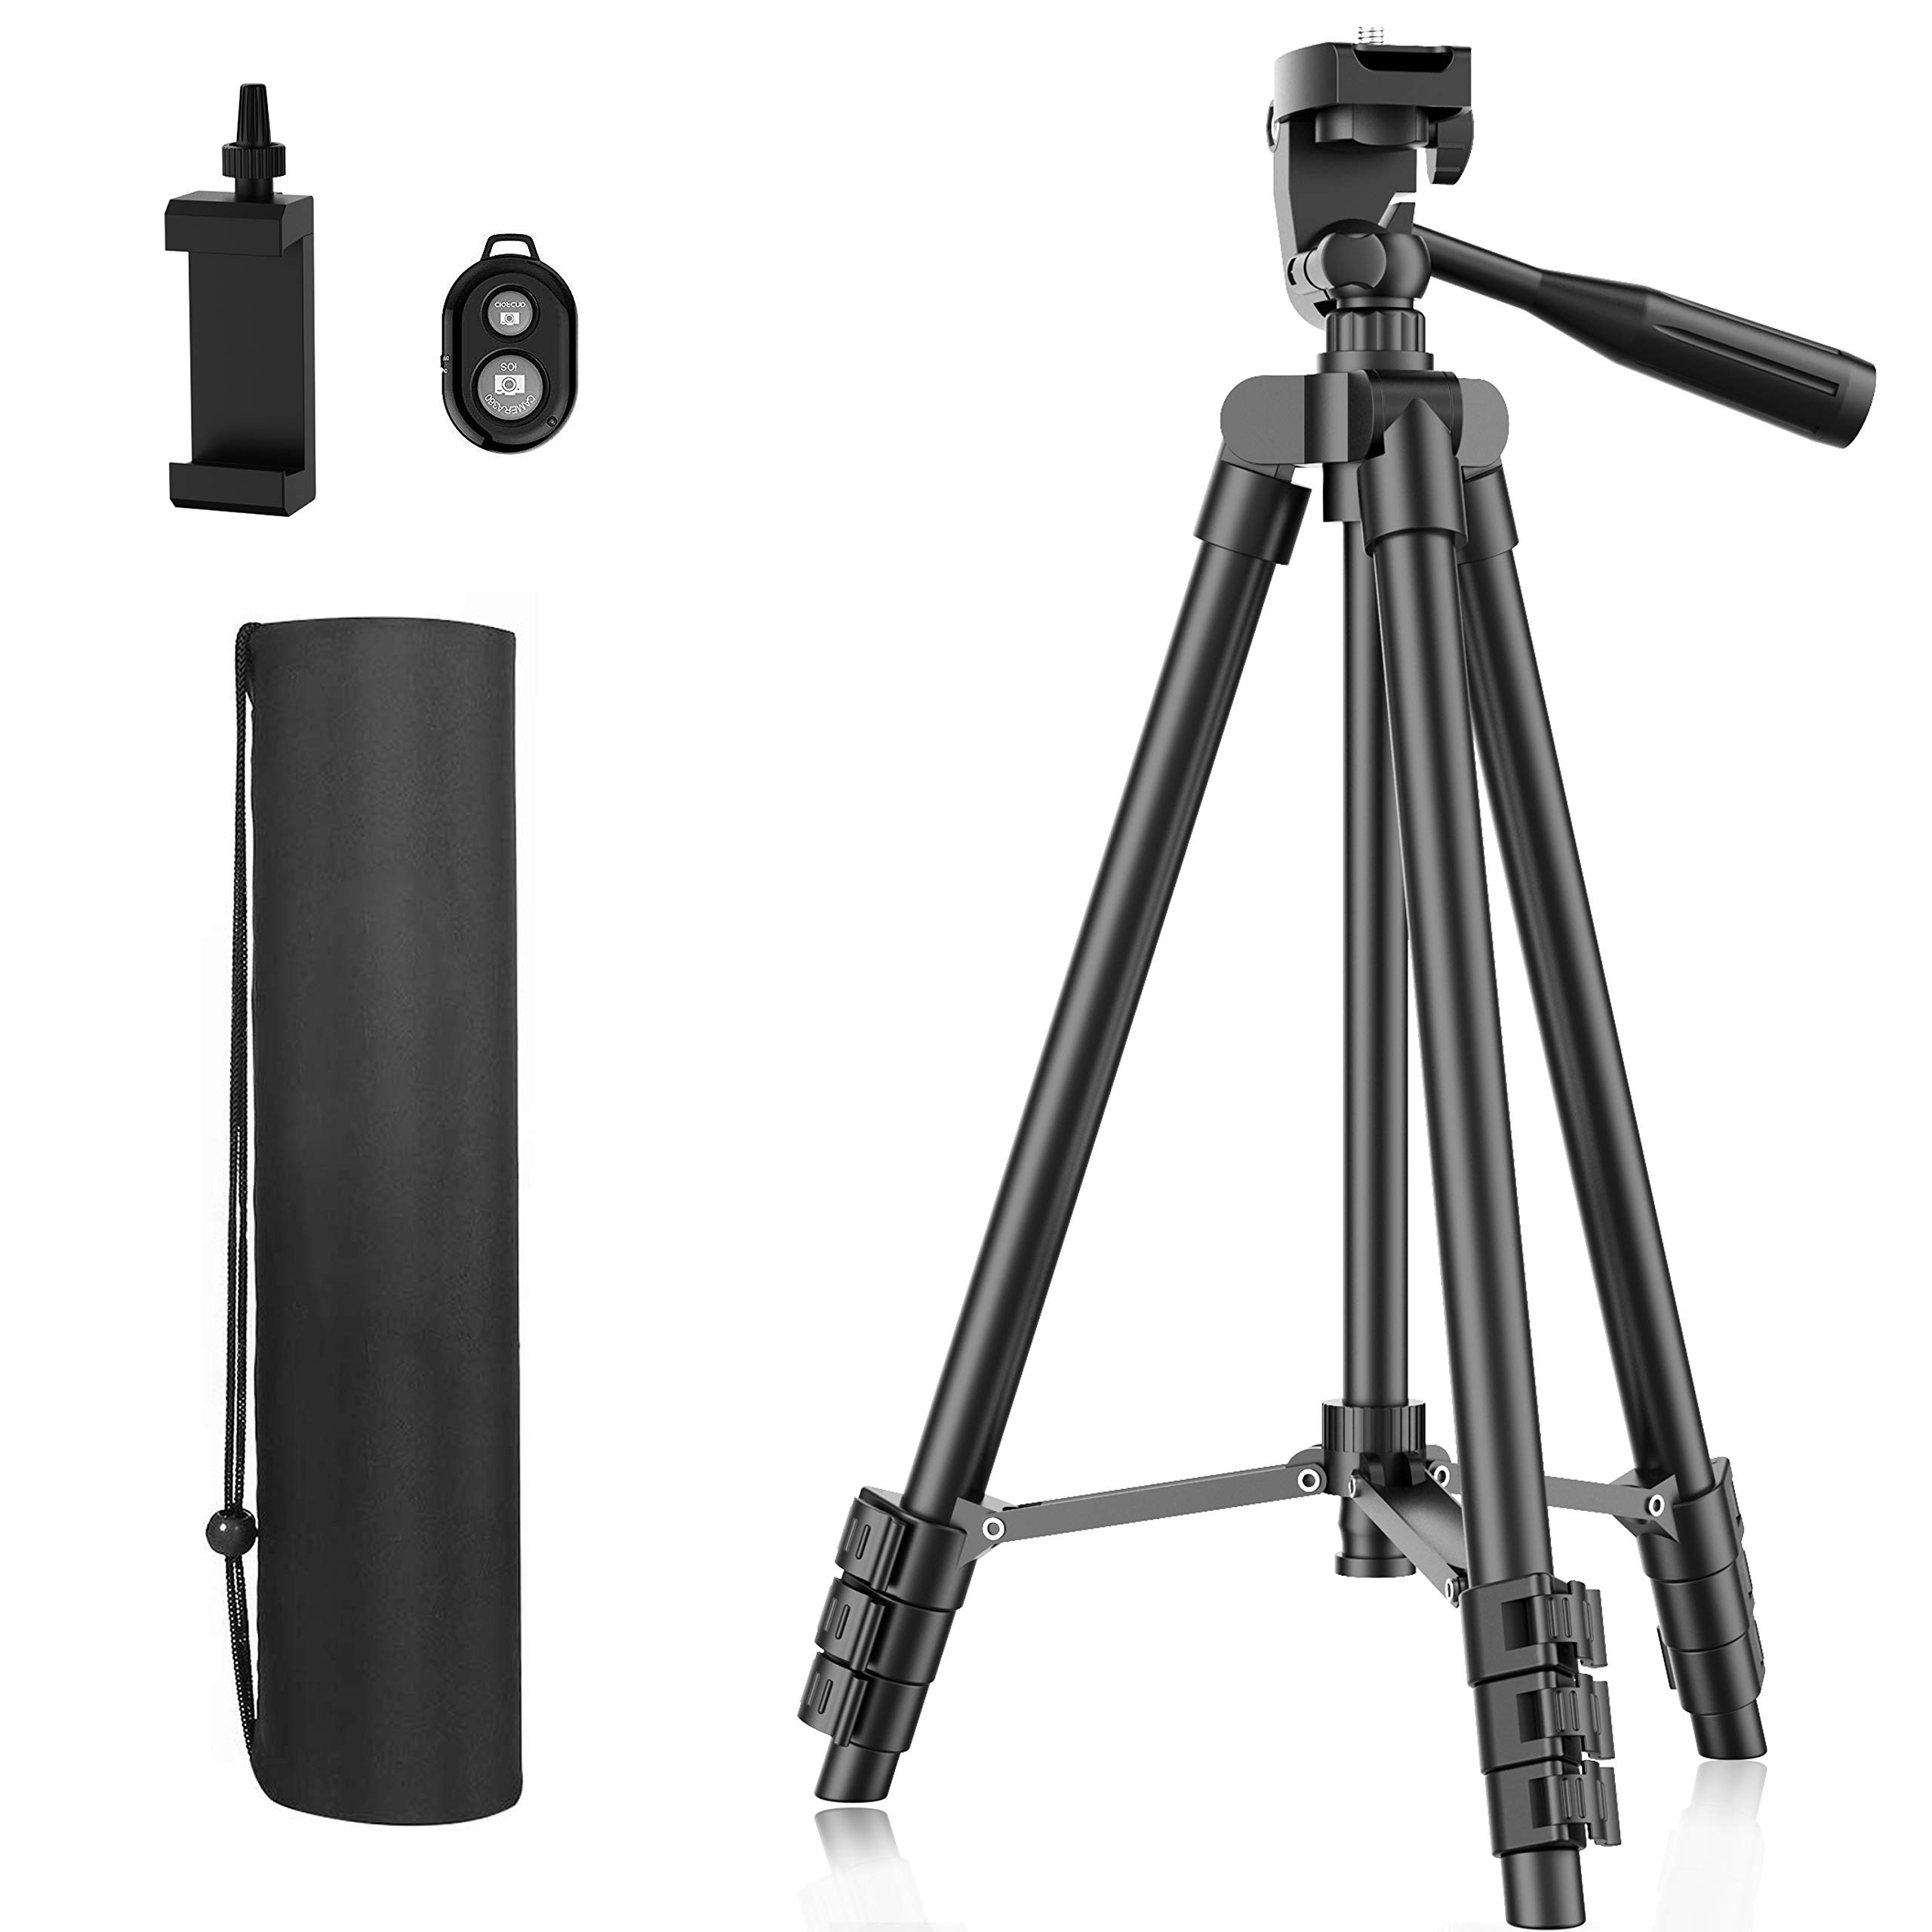 "Phone Tripod, 51"" Extendable Travel Lightweight Tripod Stand with Carrying Bag, Universal Tripod with Bluetooth Remote, Cell Phone Mount for Phone Xs/Xs Max/Xr/X/8/8 Plus/Samsung/Huawei Phone,Camera"